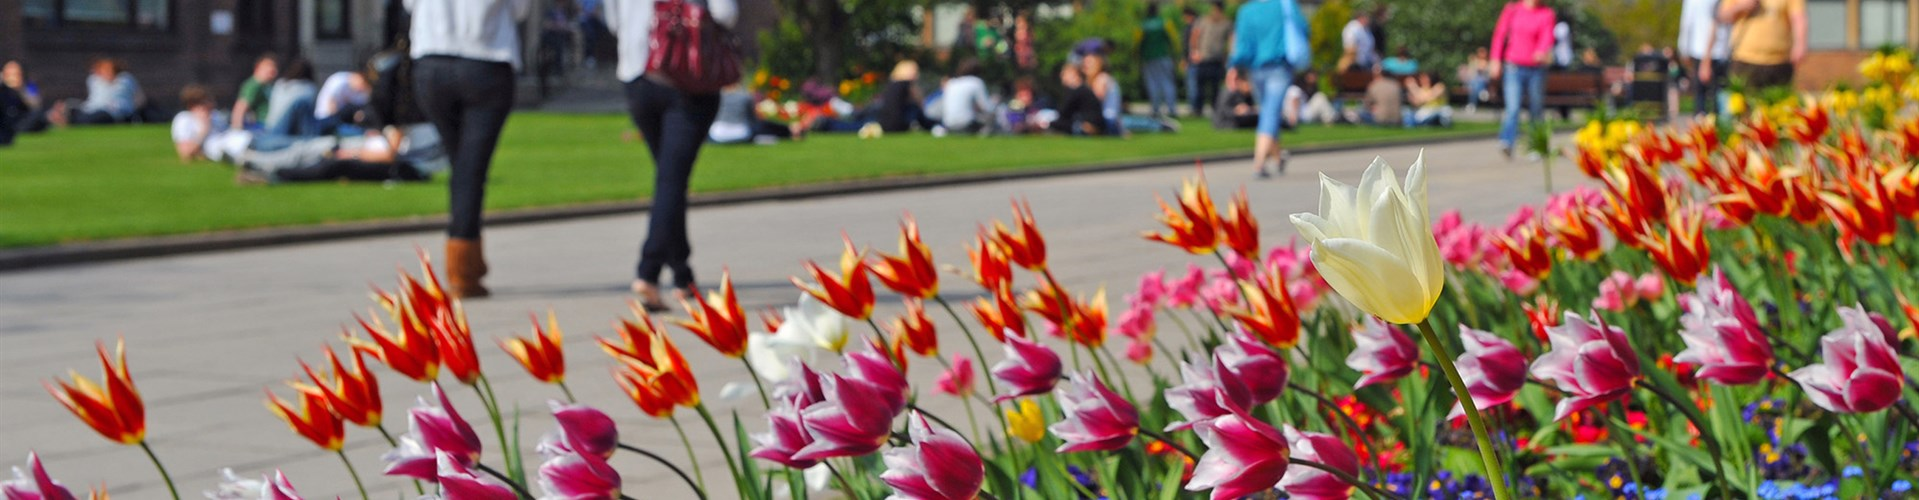 Tulips at the University of Hull